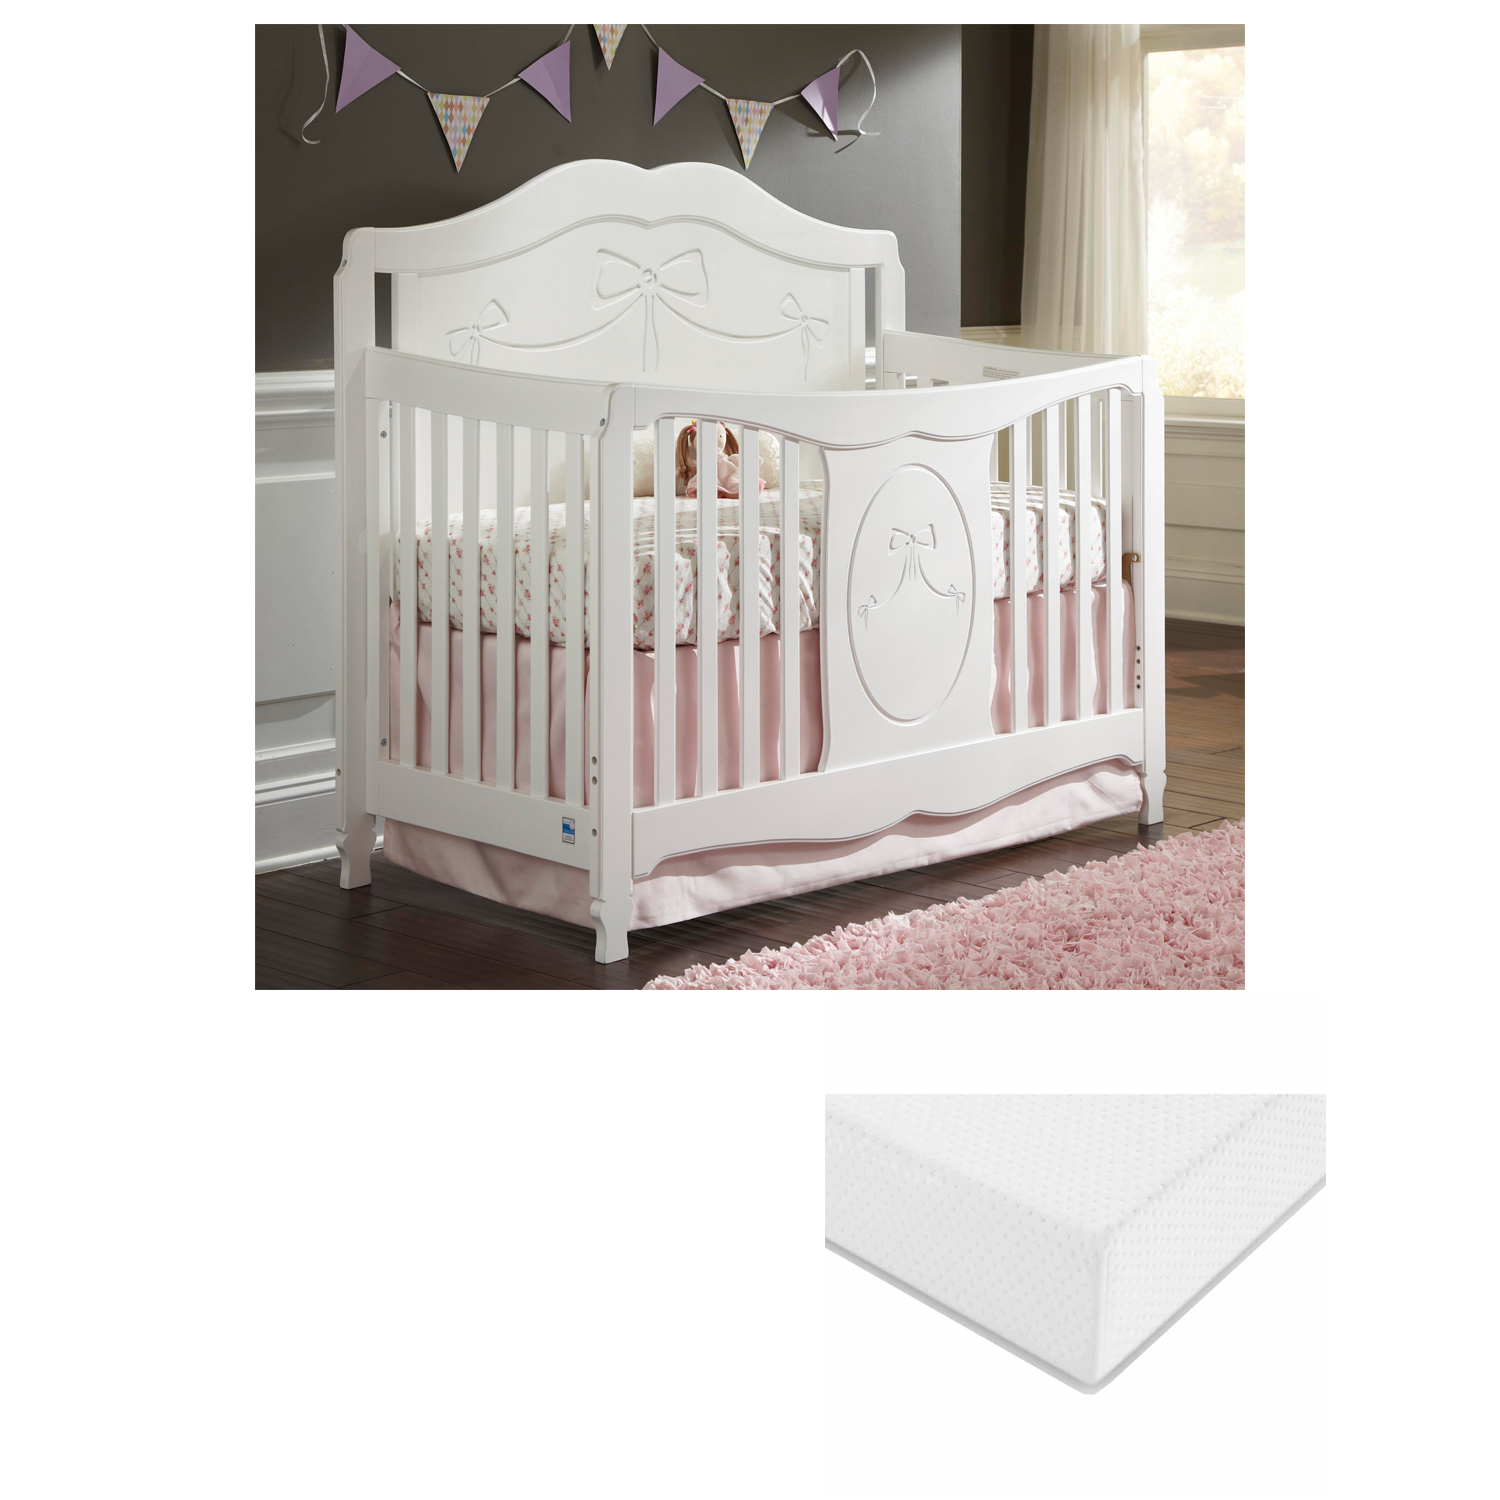 Storkcraft Princess 4 in 1 Convertible Crib with BONUS Graco Premium Foam Mattress